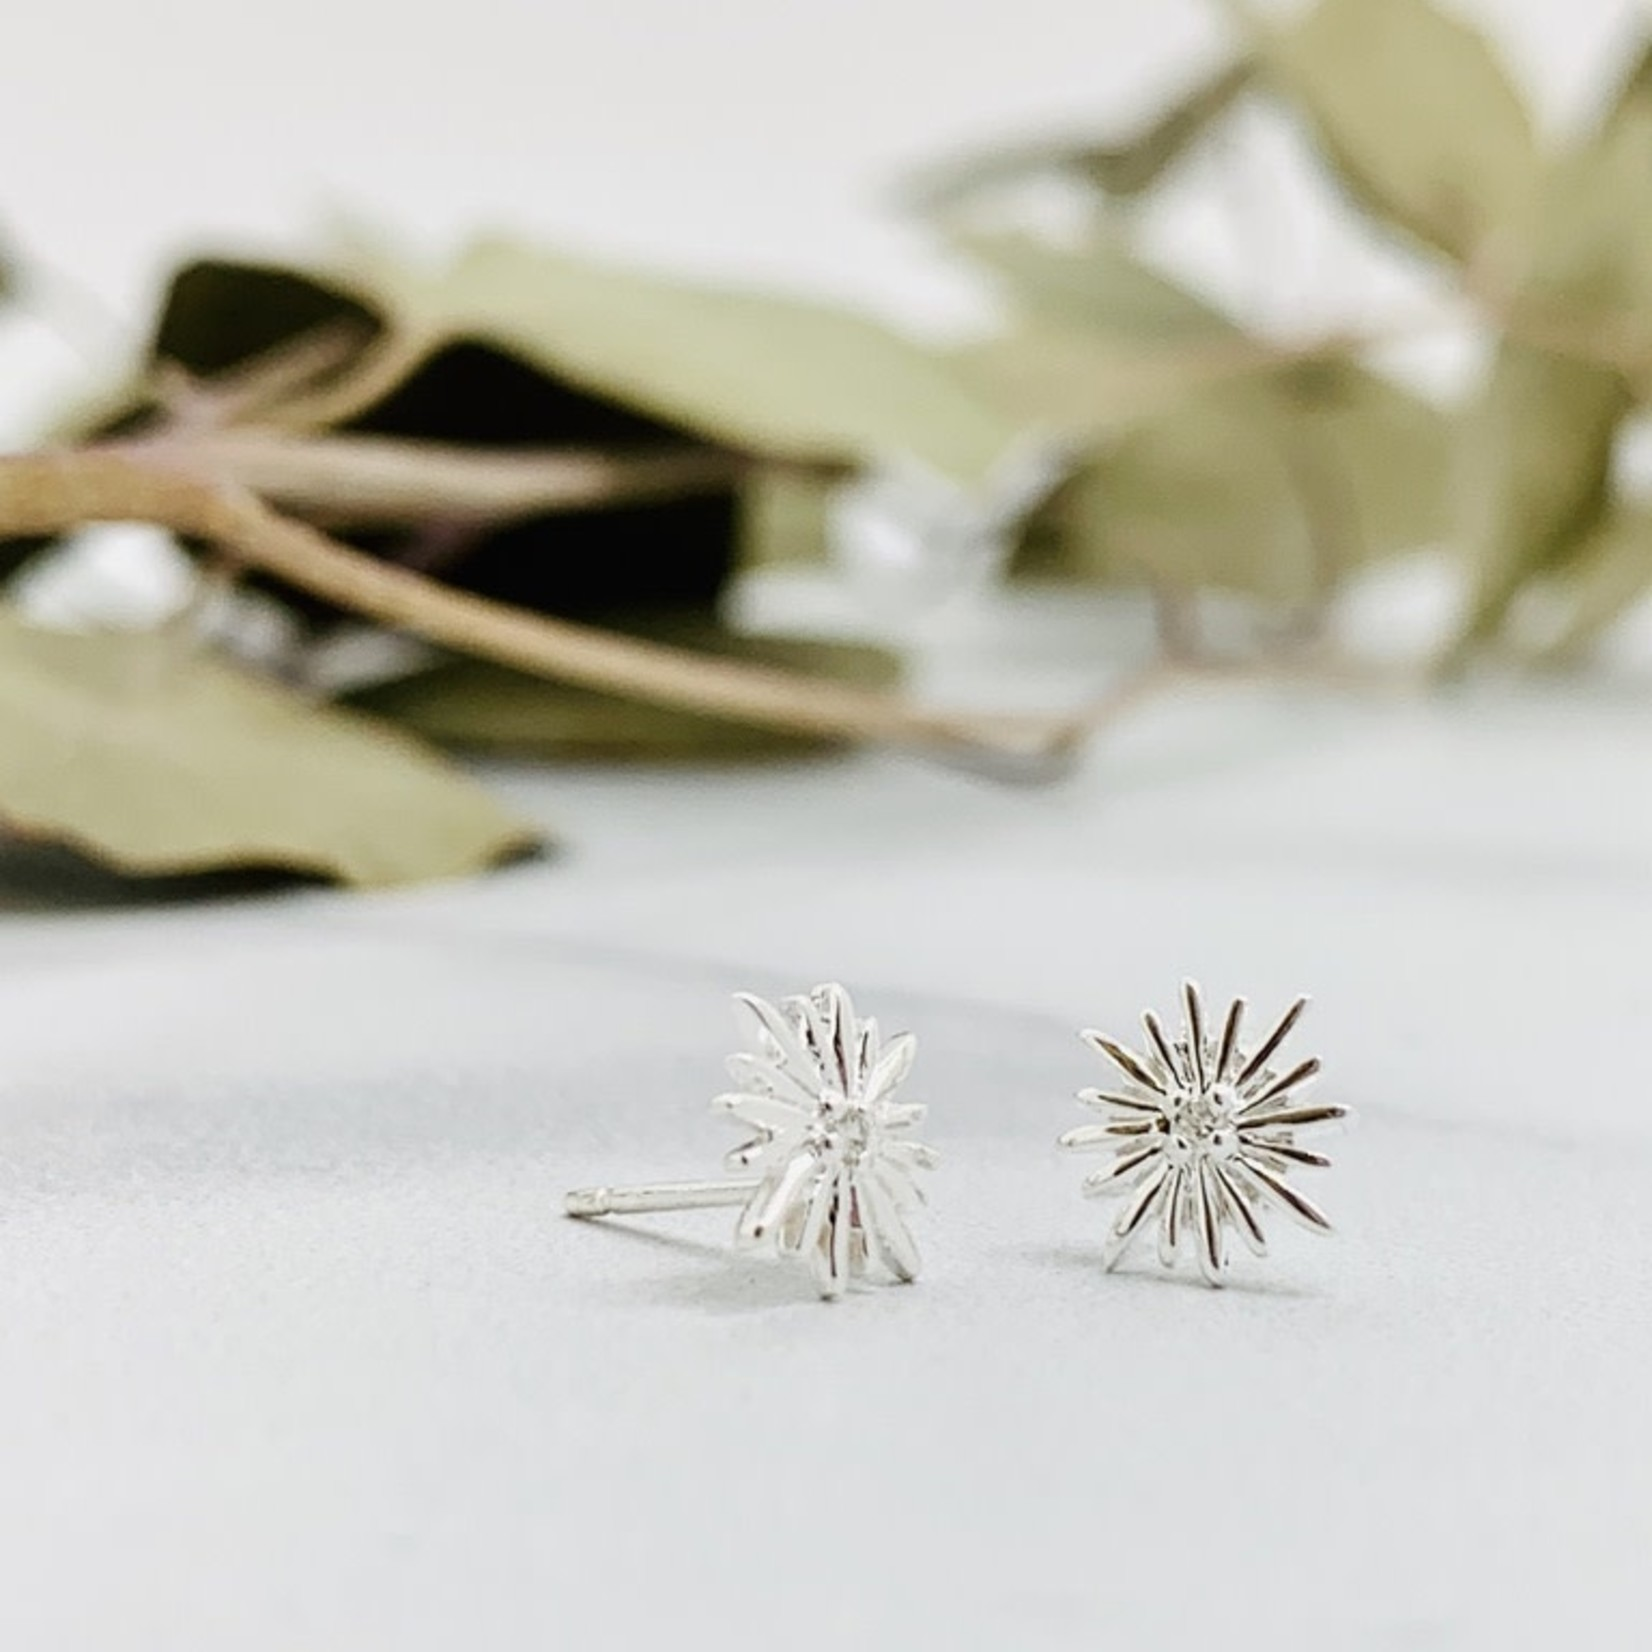 Sunburst Stud Earrings with CZ, SS